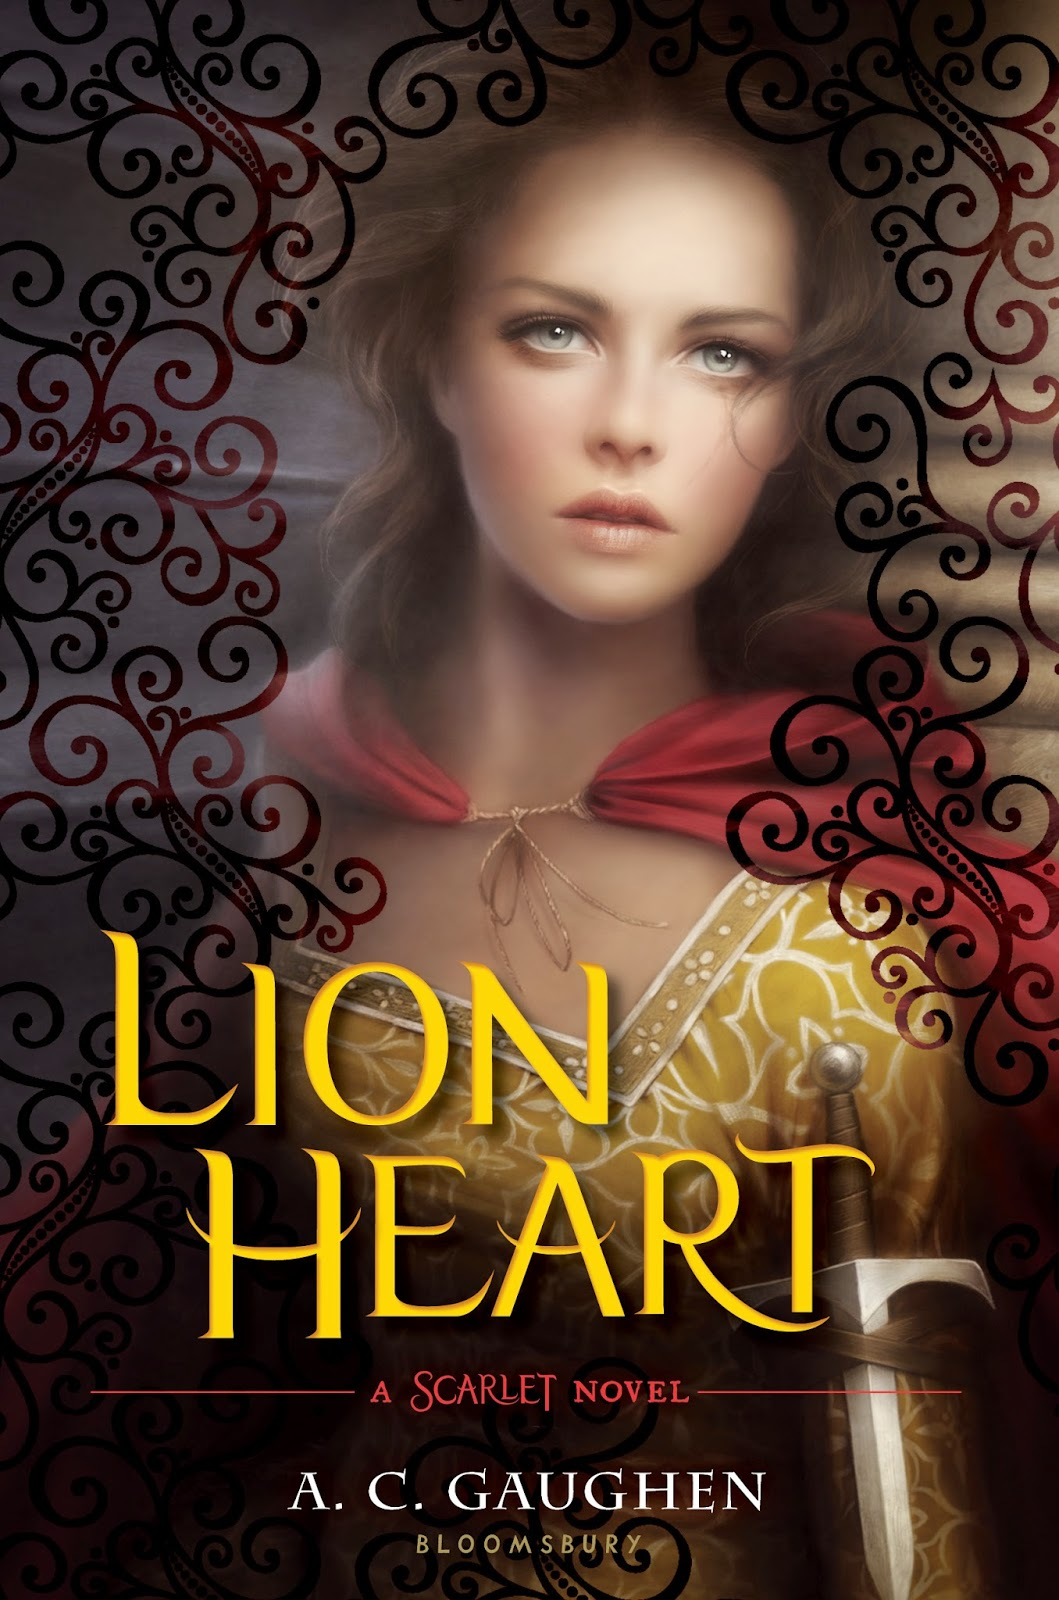 http://www.bloomsbury.com/us/lion-heart-9780802736161/